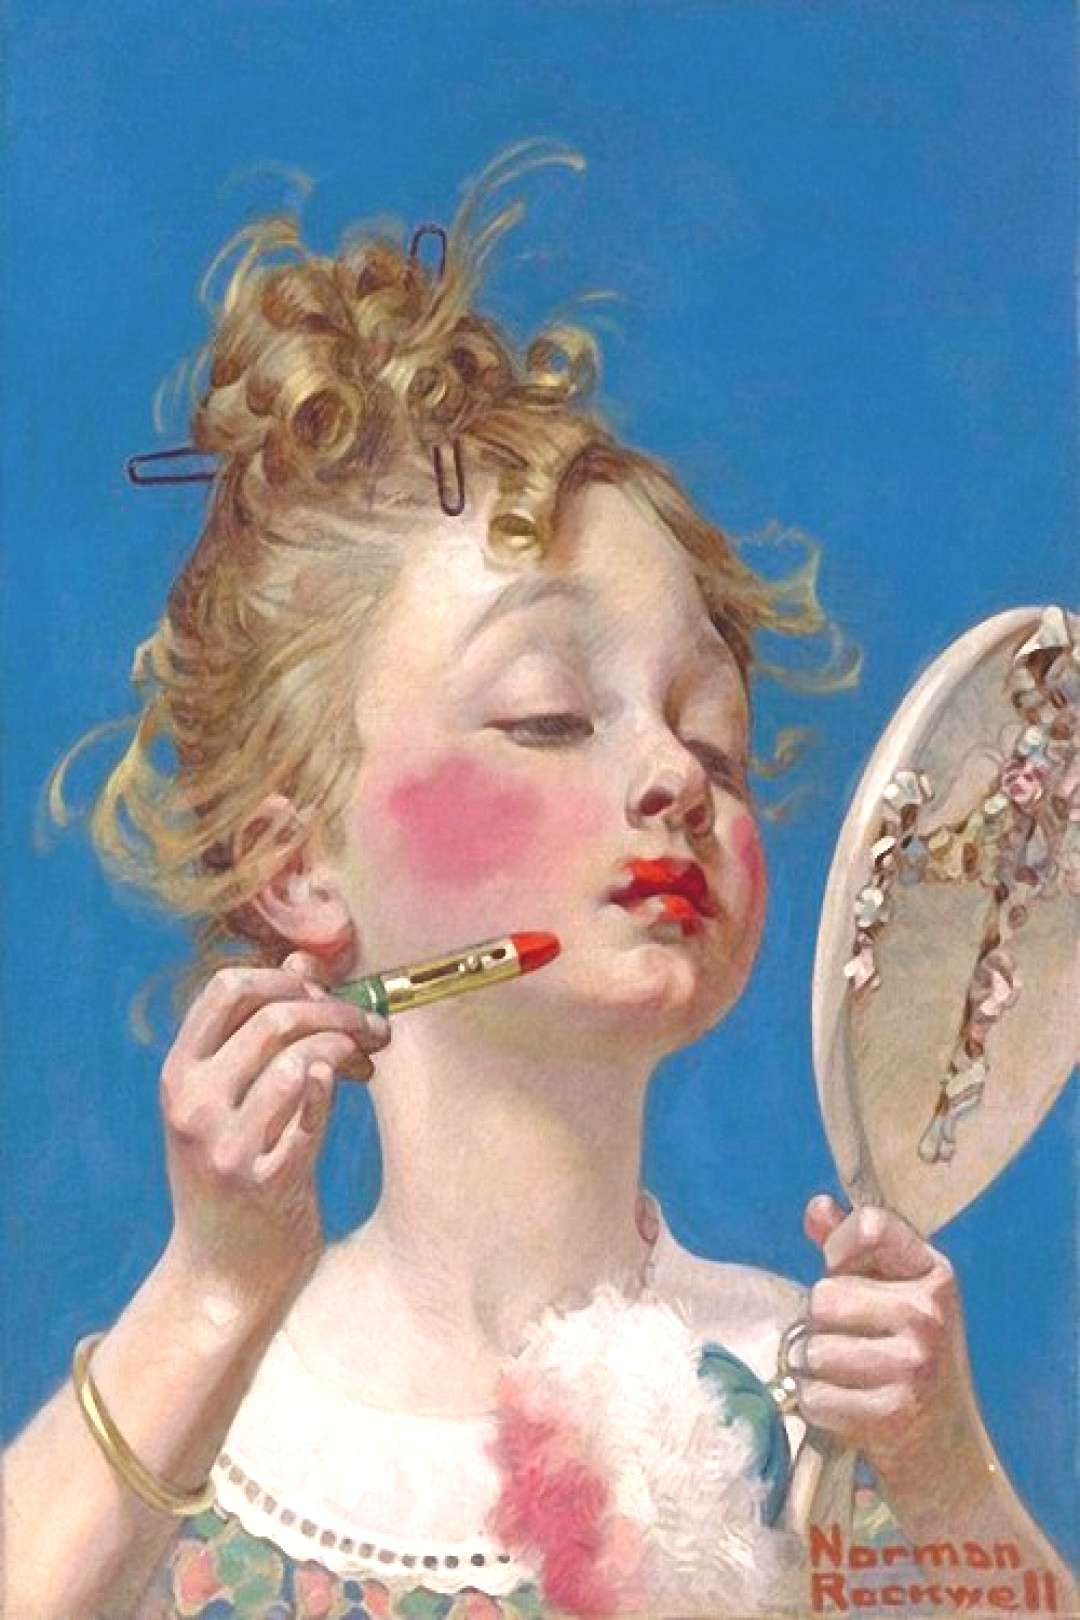 Art — Norman Rockwell Little Girl with Lipstick. 1922 г